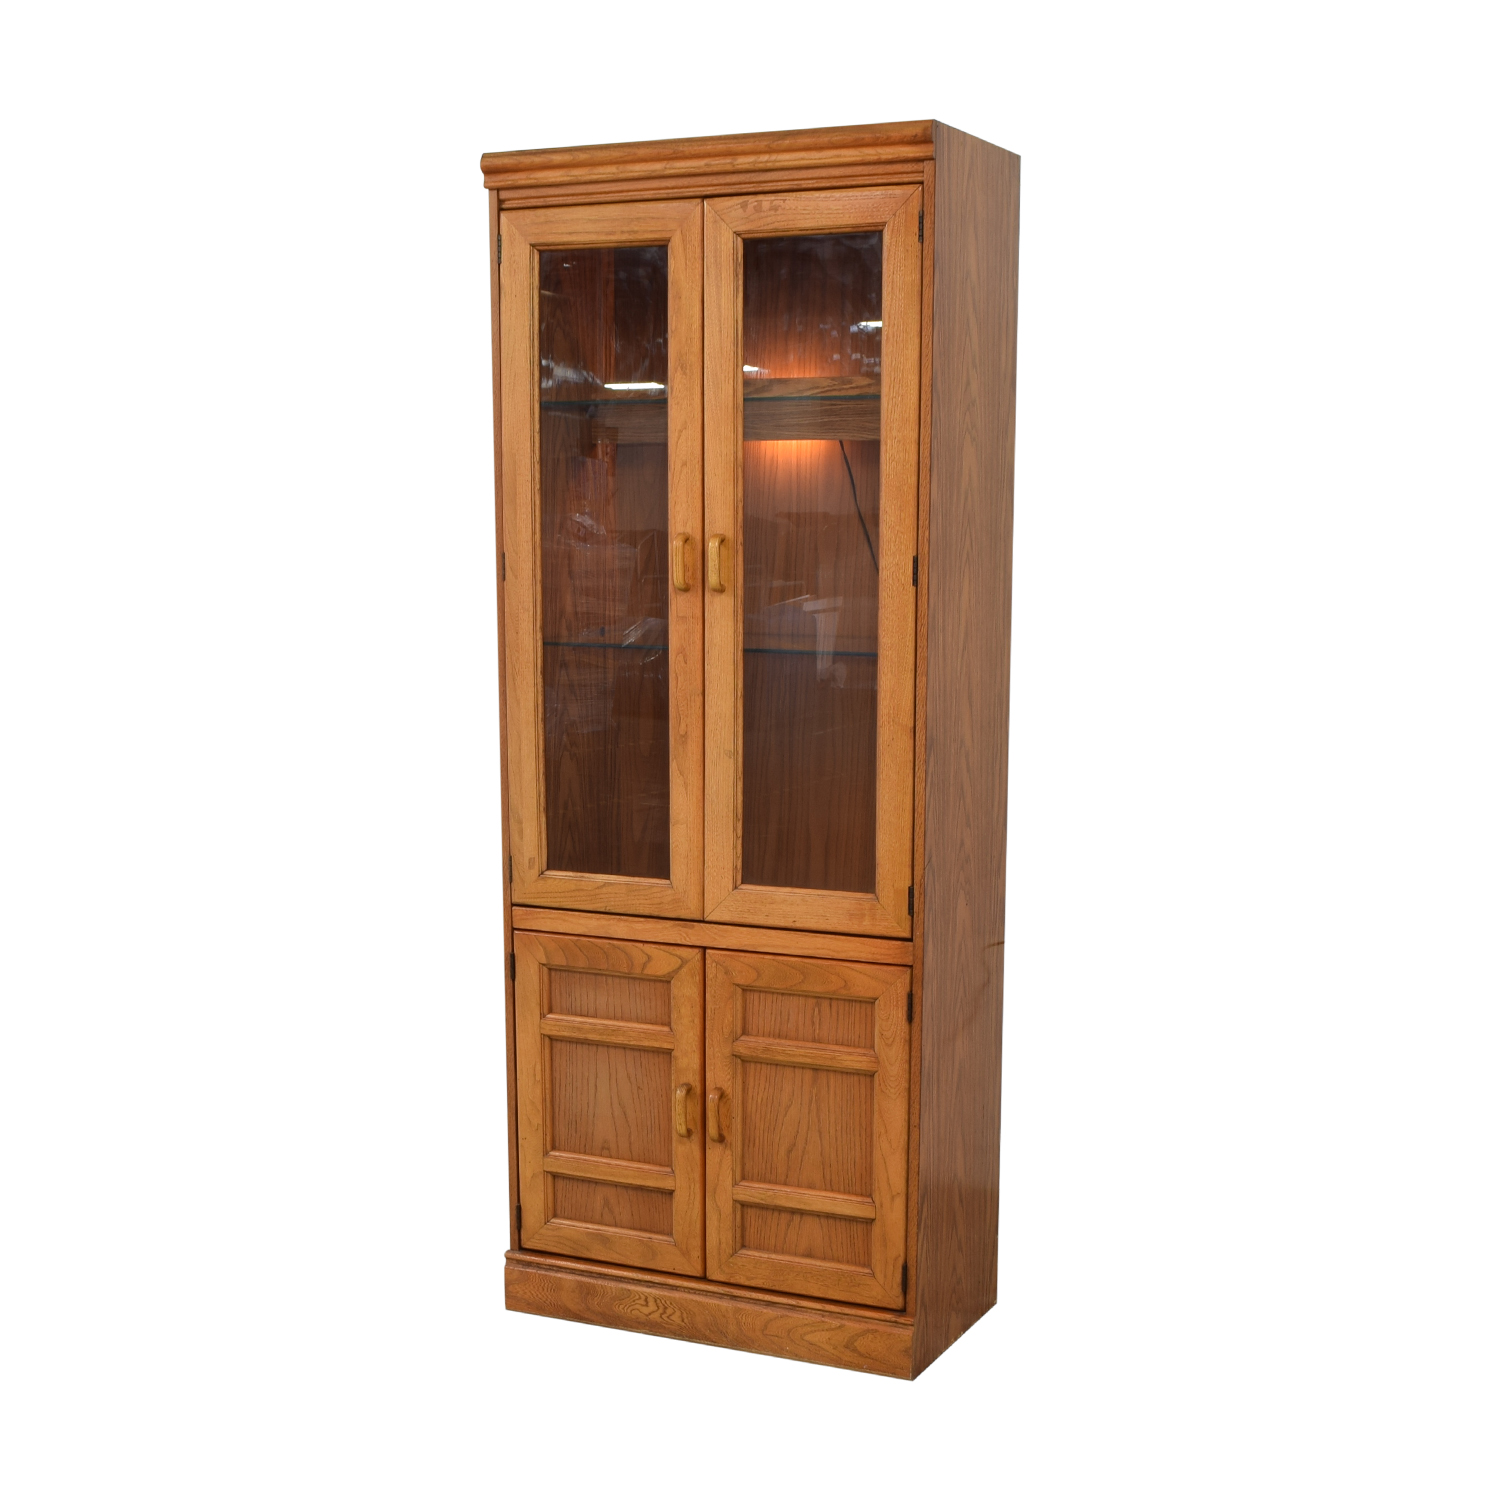 shop  Macy's Wood and Glass China Cabinet online